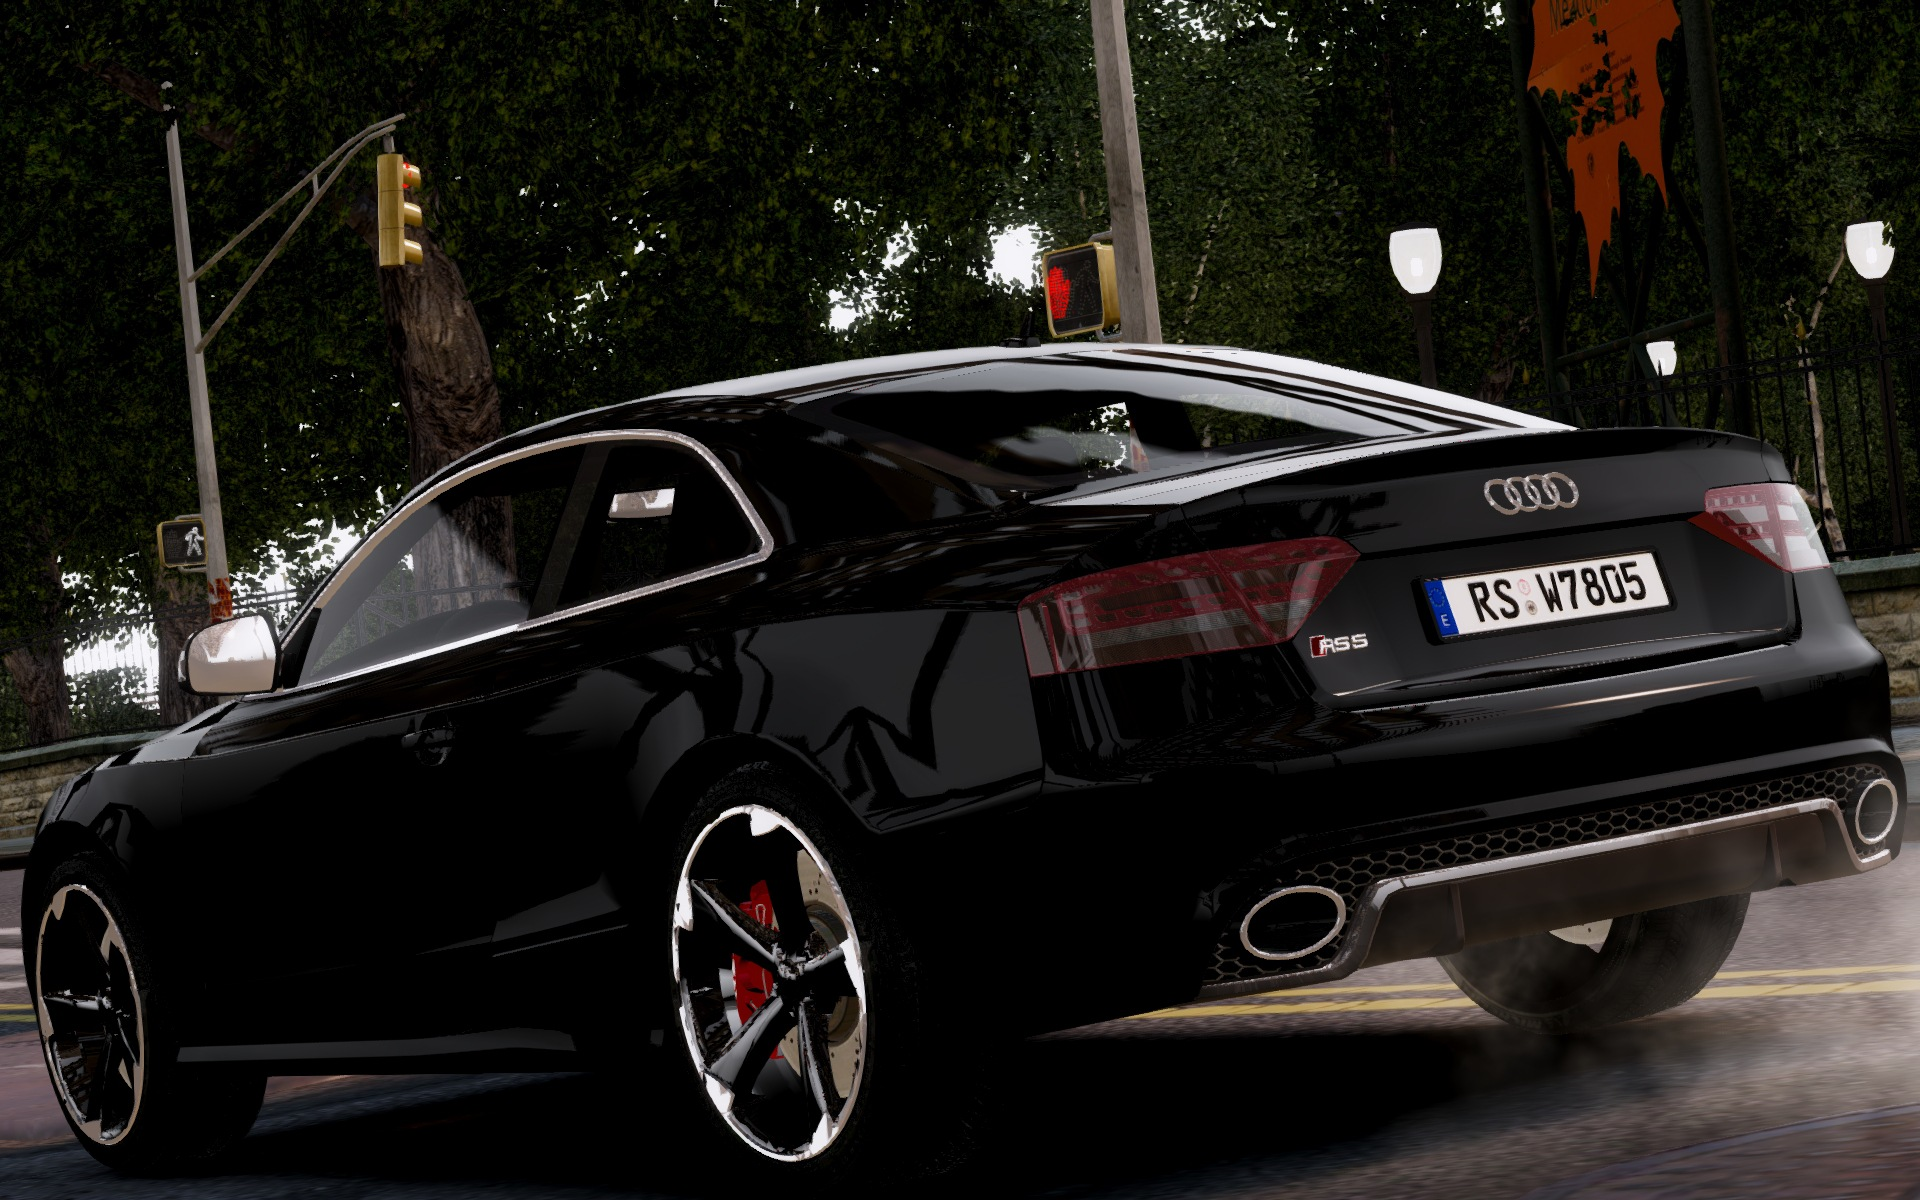 audi rs5 vehicules pour gta iv sur gta modding. Black Bedroom Furniture Sets. Home Design Ideas